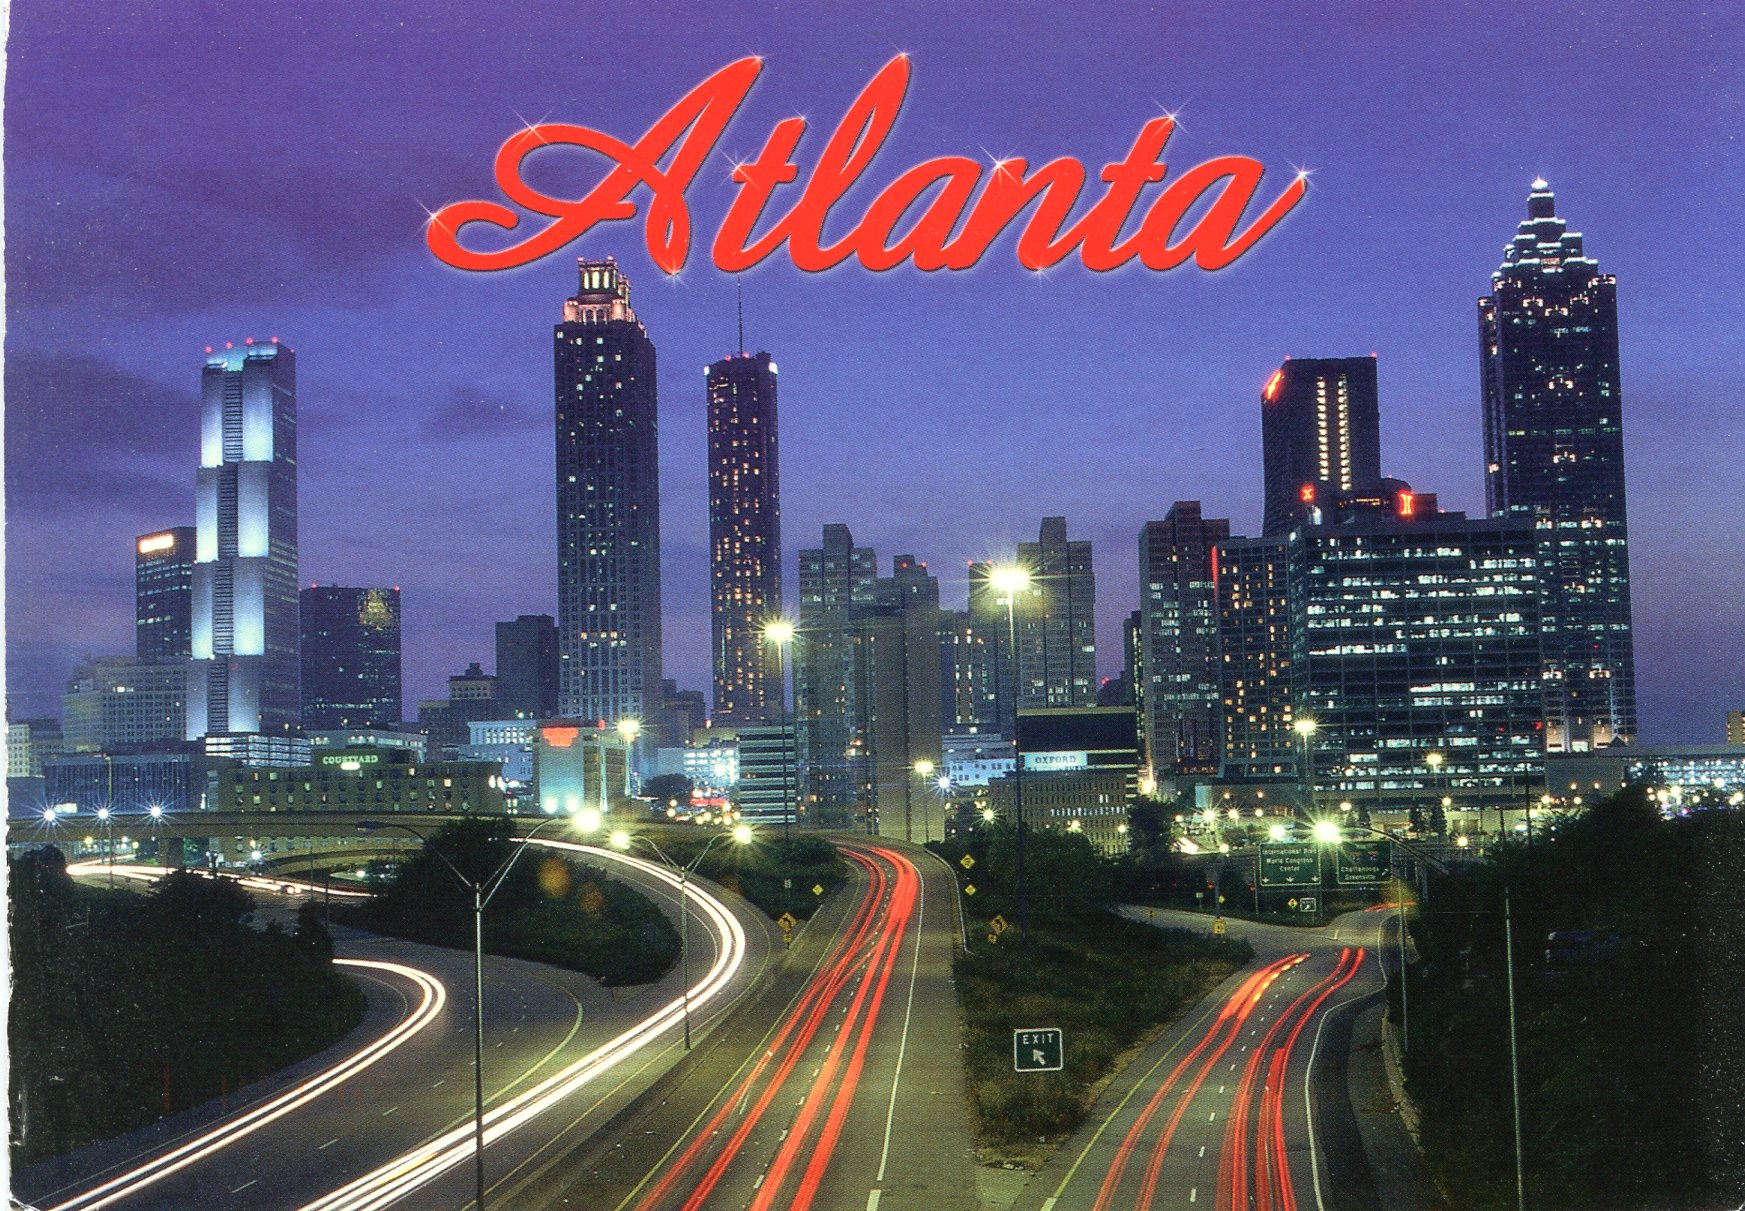 A context-free rundown of what America is saying about Atlanta right now